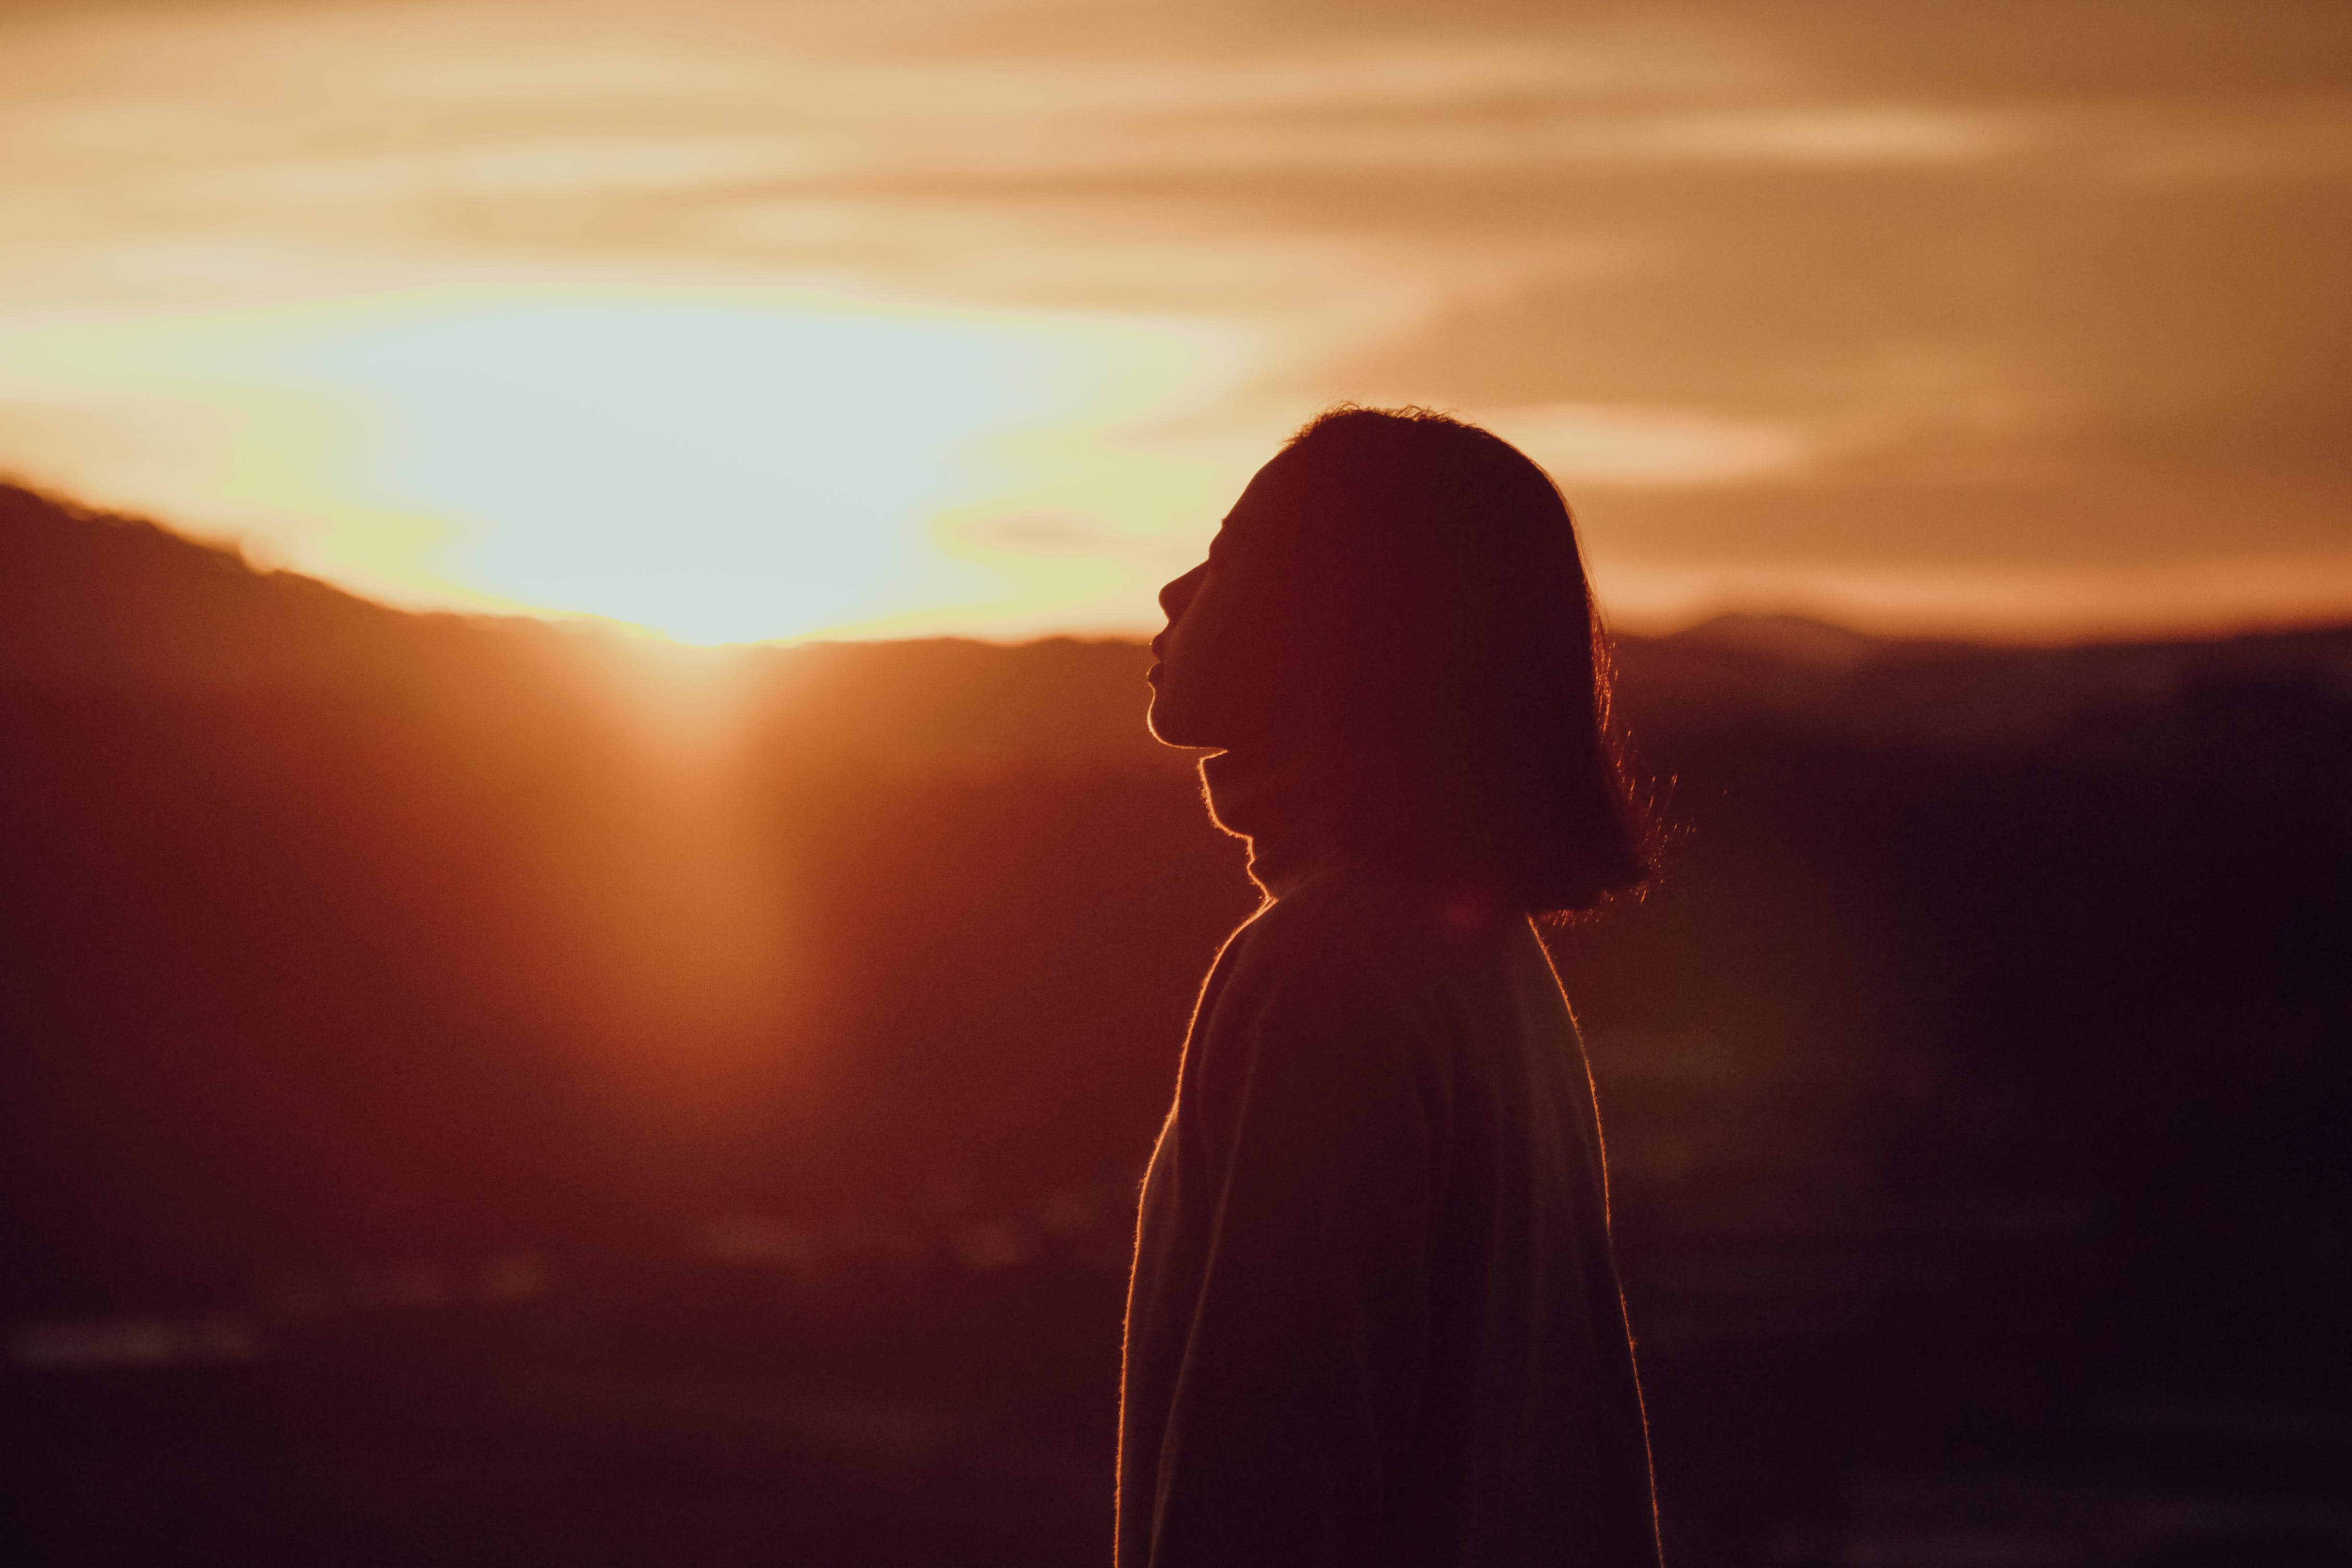 Silhouette Photography of Woman at Golden Hour